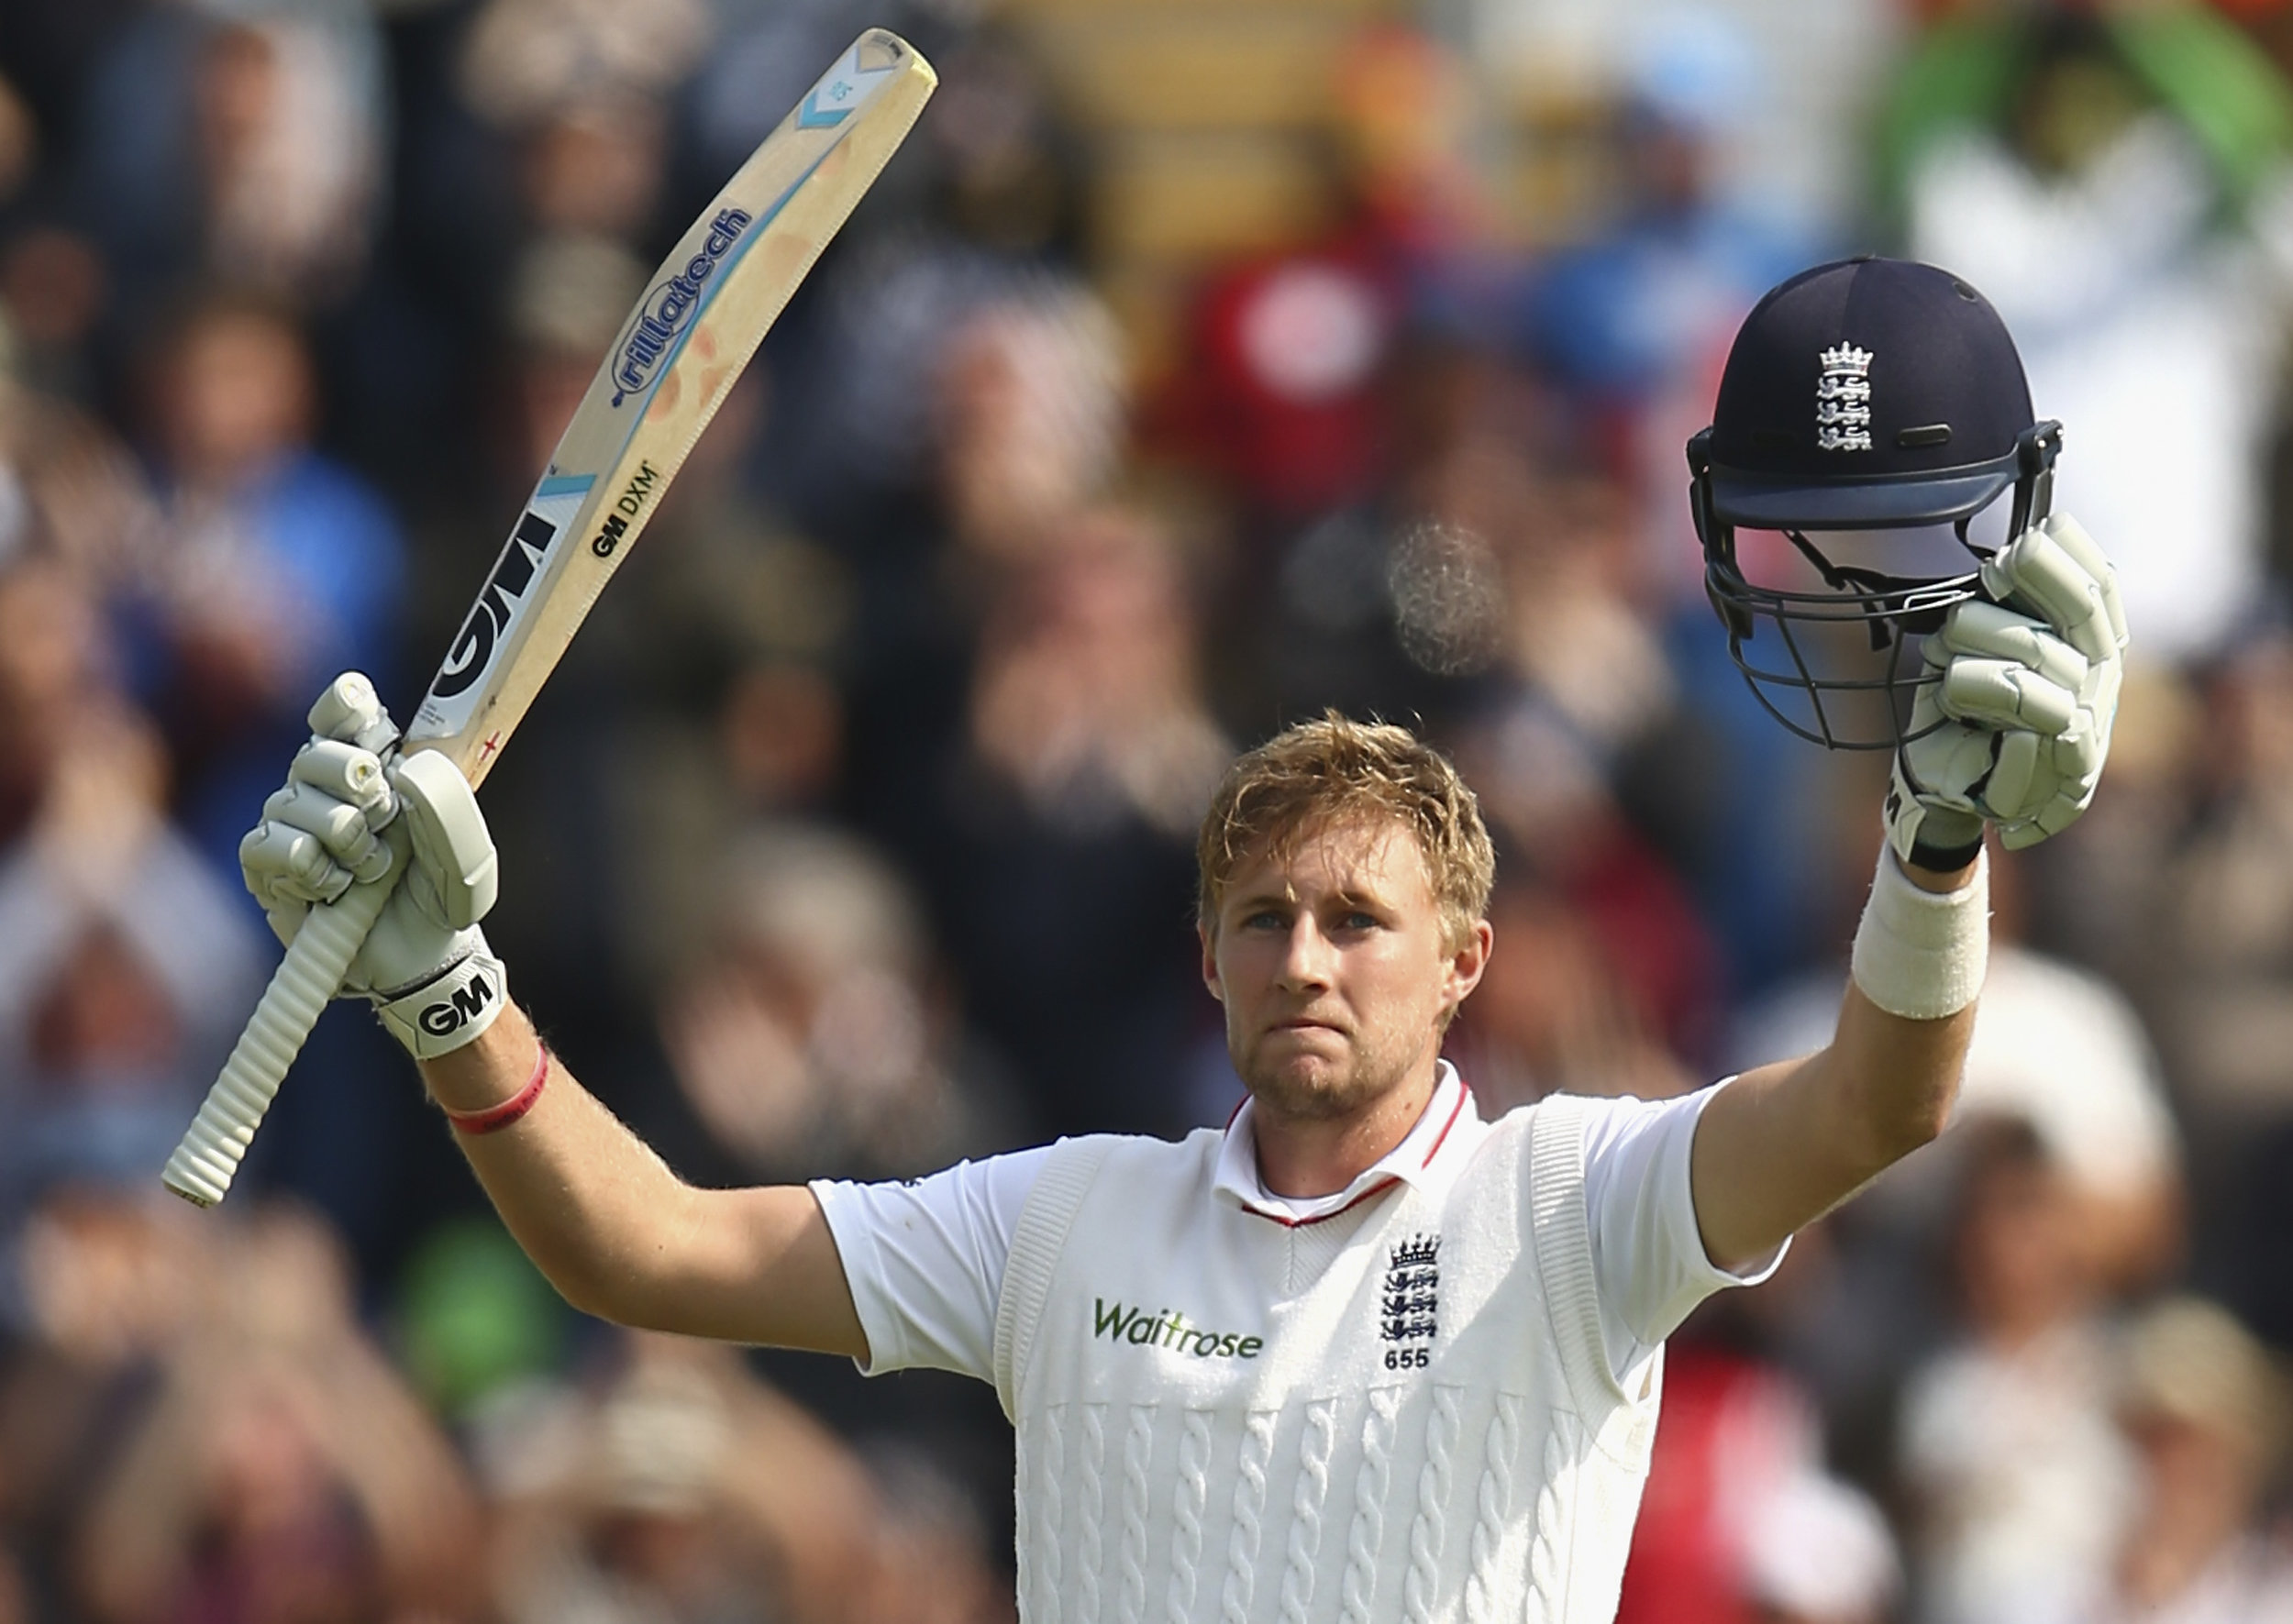 Joe Root celebrates after reaching his century during day one of the 1st Investec Ashes Test match between England and Australia at SWALEC Stadium on July 8, 2015 in Cardiff, United Kingdom